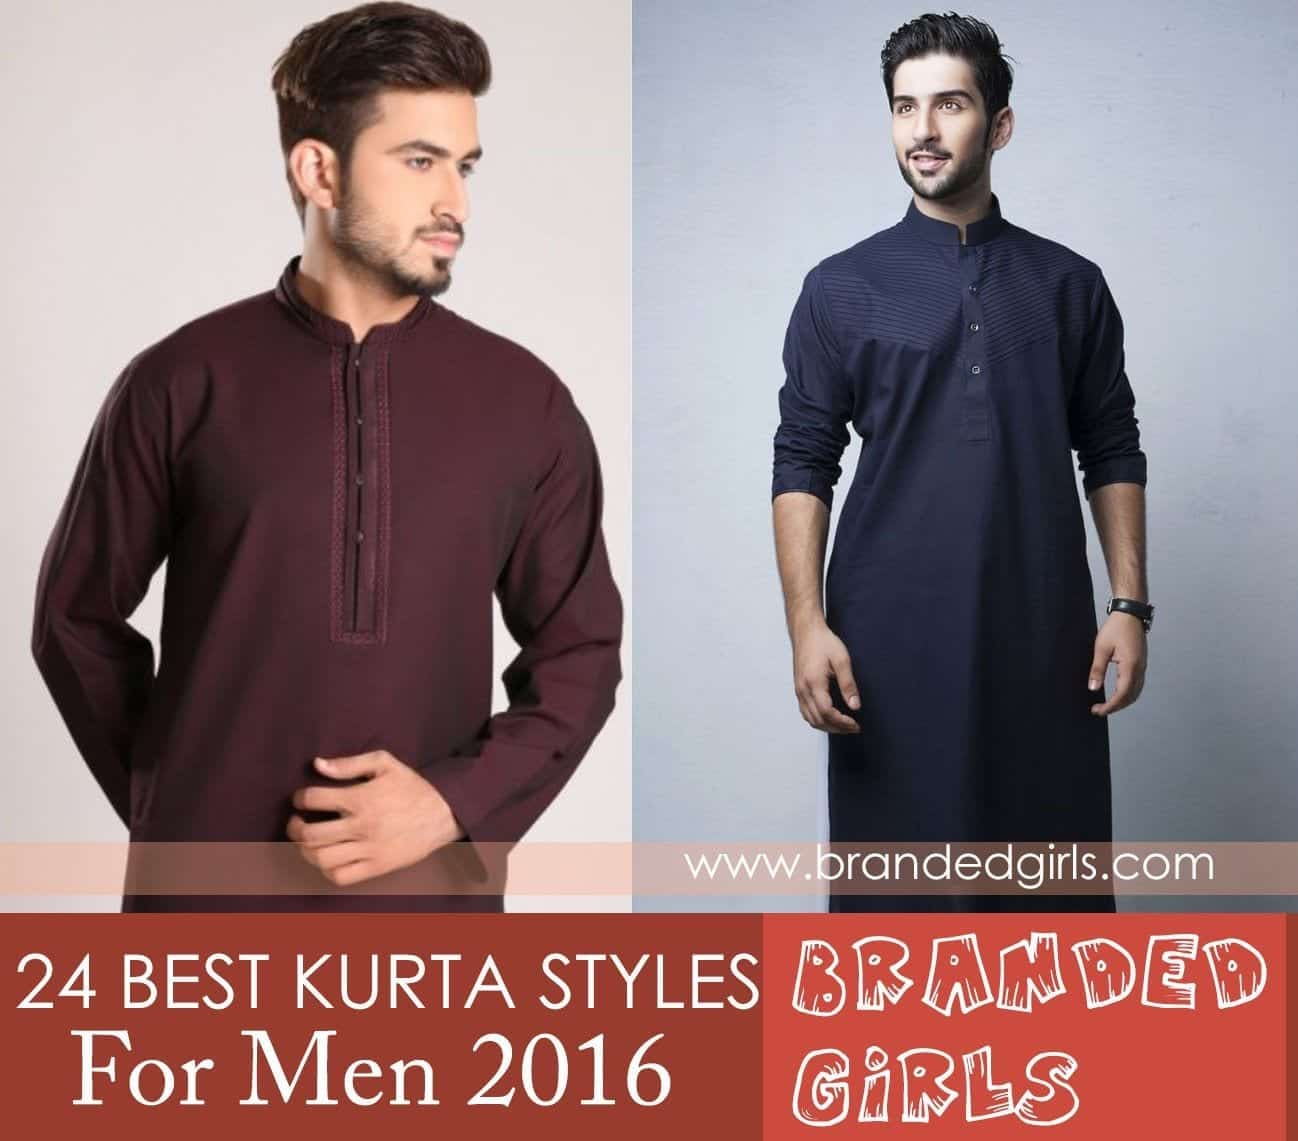 polyvore-sample-4 Latest Kurta Styles for Men - 24 Best Kurta Styles in 2016